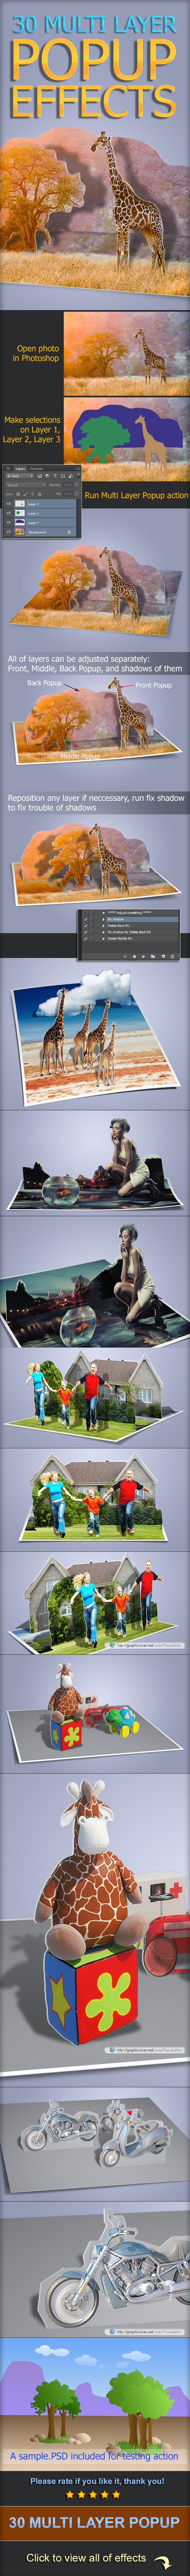 30 Multi Layer Popup Effect - Photo Effects Actions